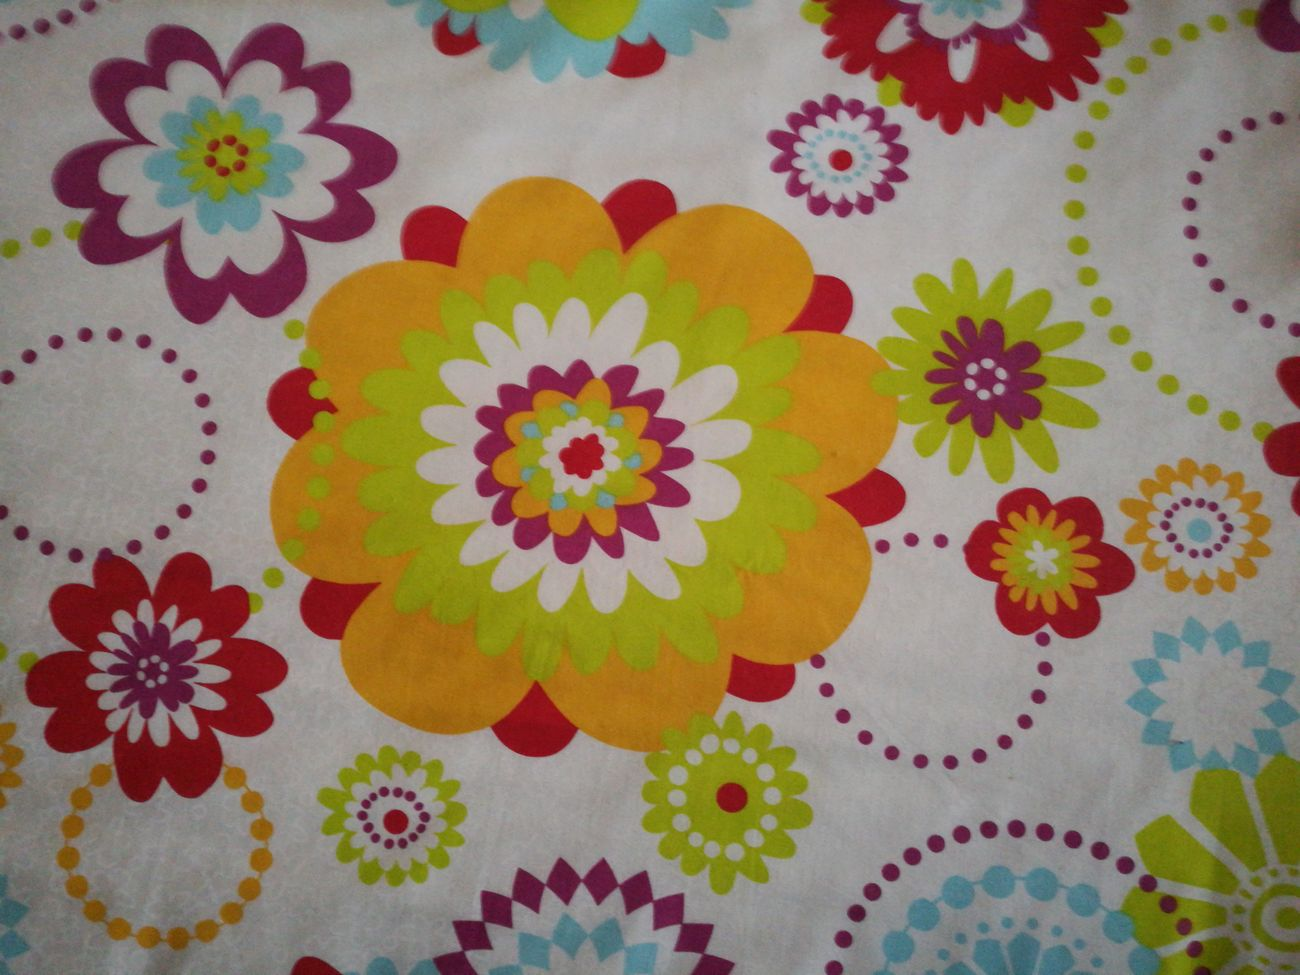 Colcha Flores Flower Multi Colored Art And Craft Pattern Creativity Variation No People Close-up Indoors  Day